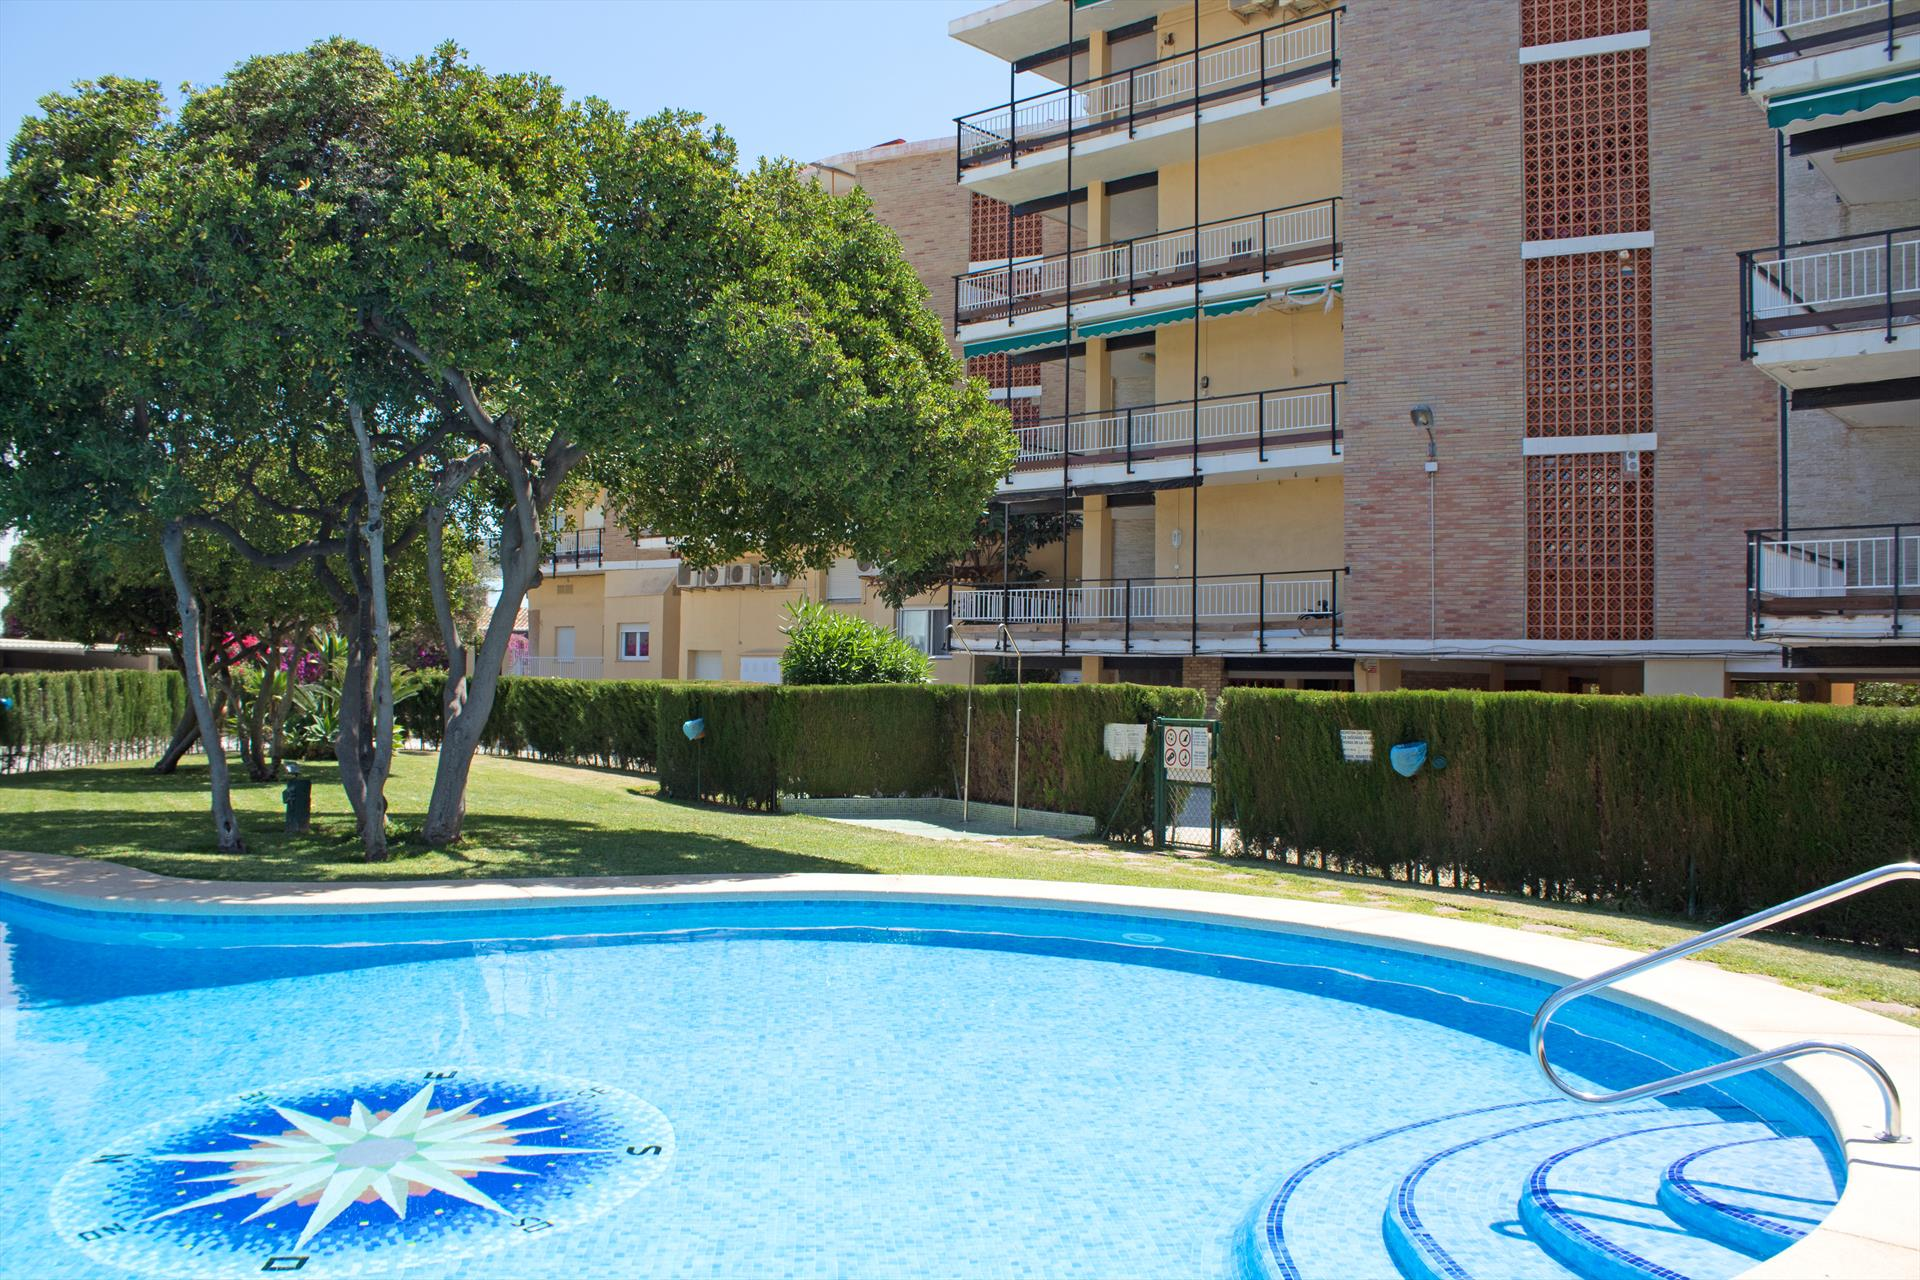 Apartamento El Arenal, Nice apartment in Javea, on the Costa Blanca, Spain  with communal pool for 6 persons.....